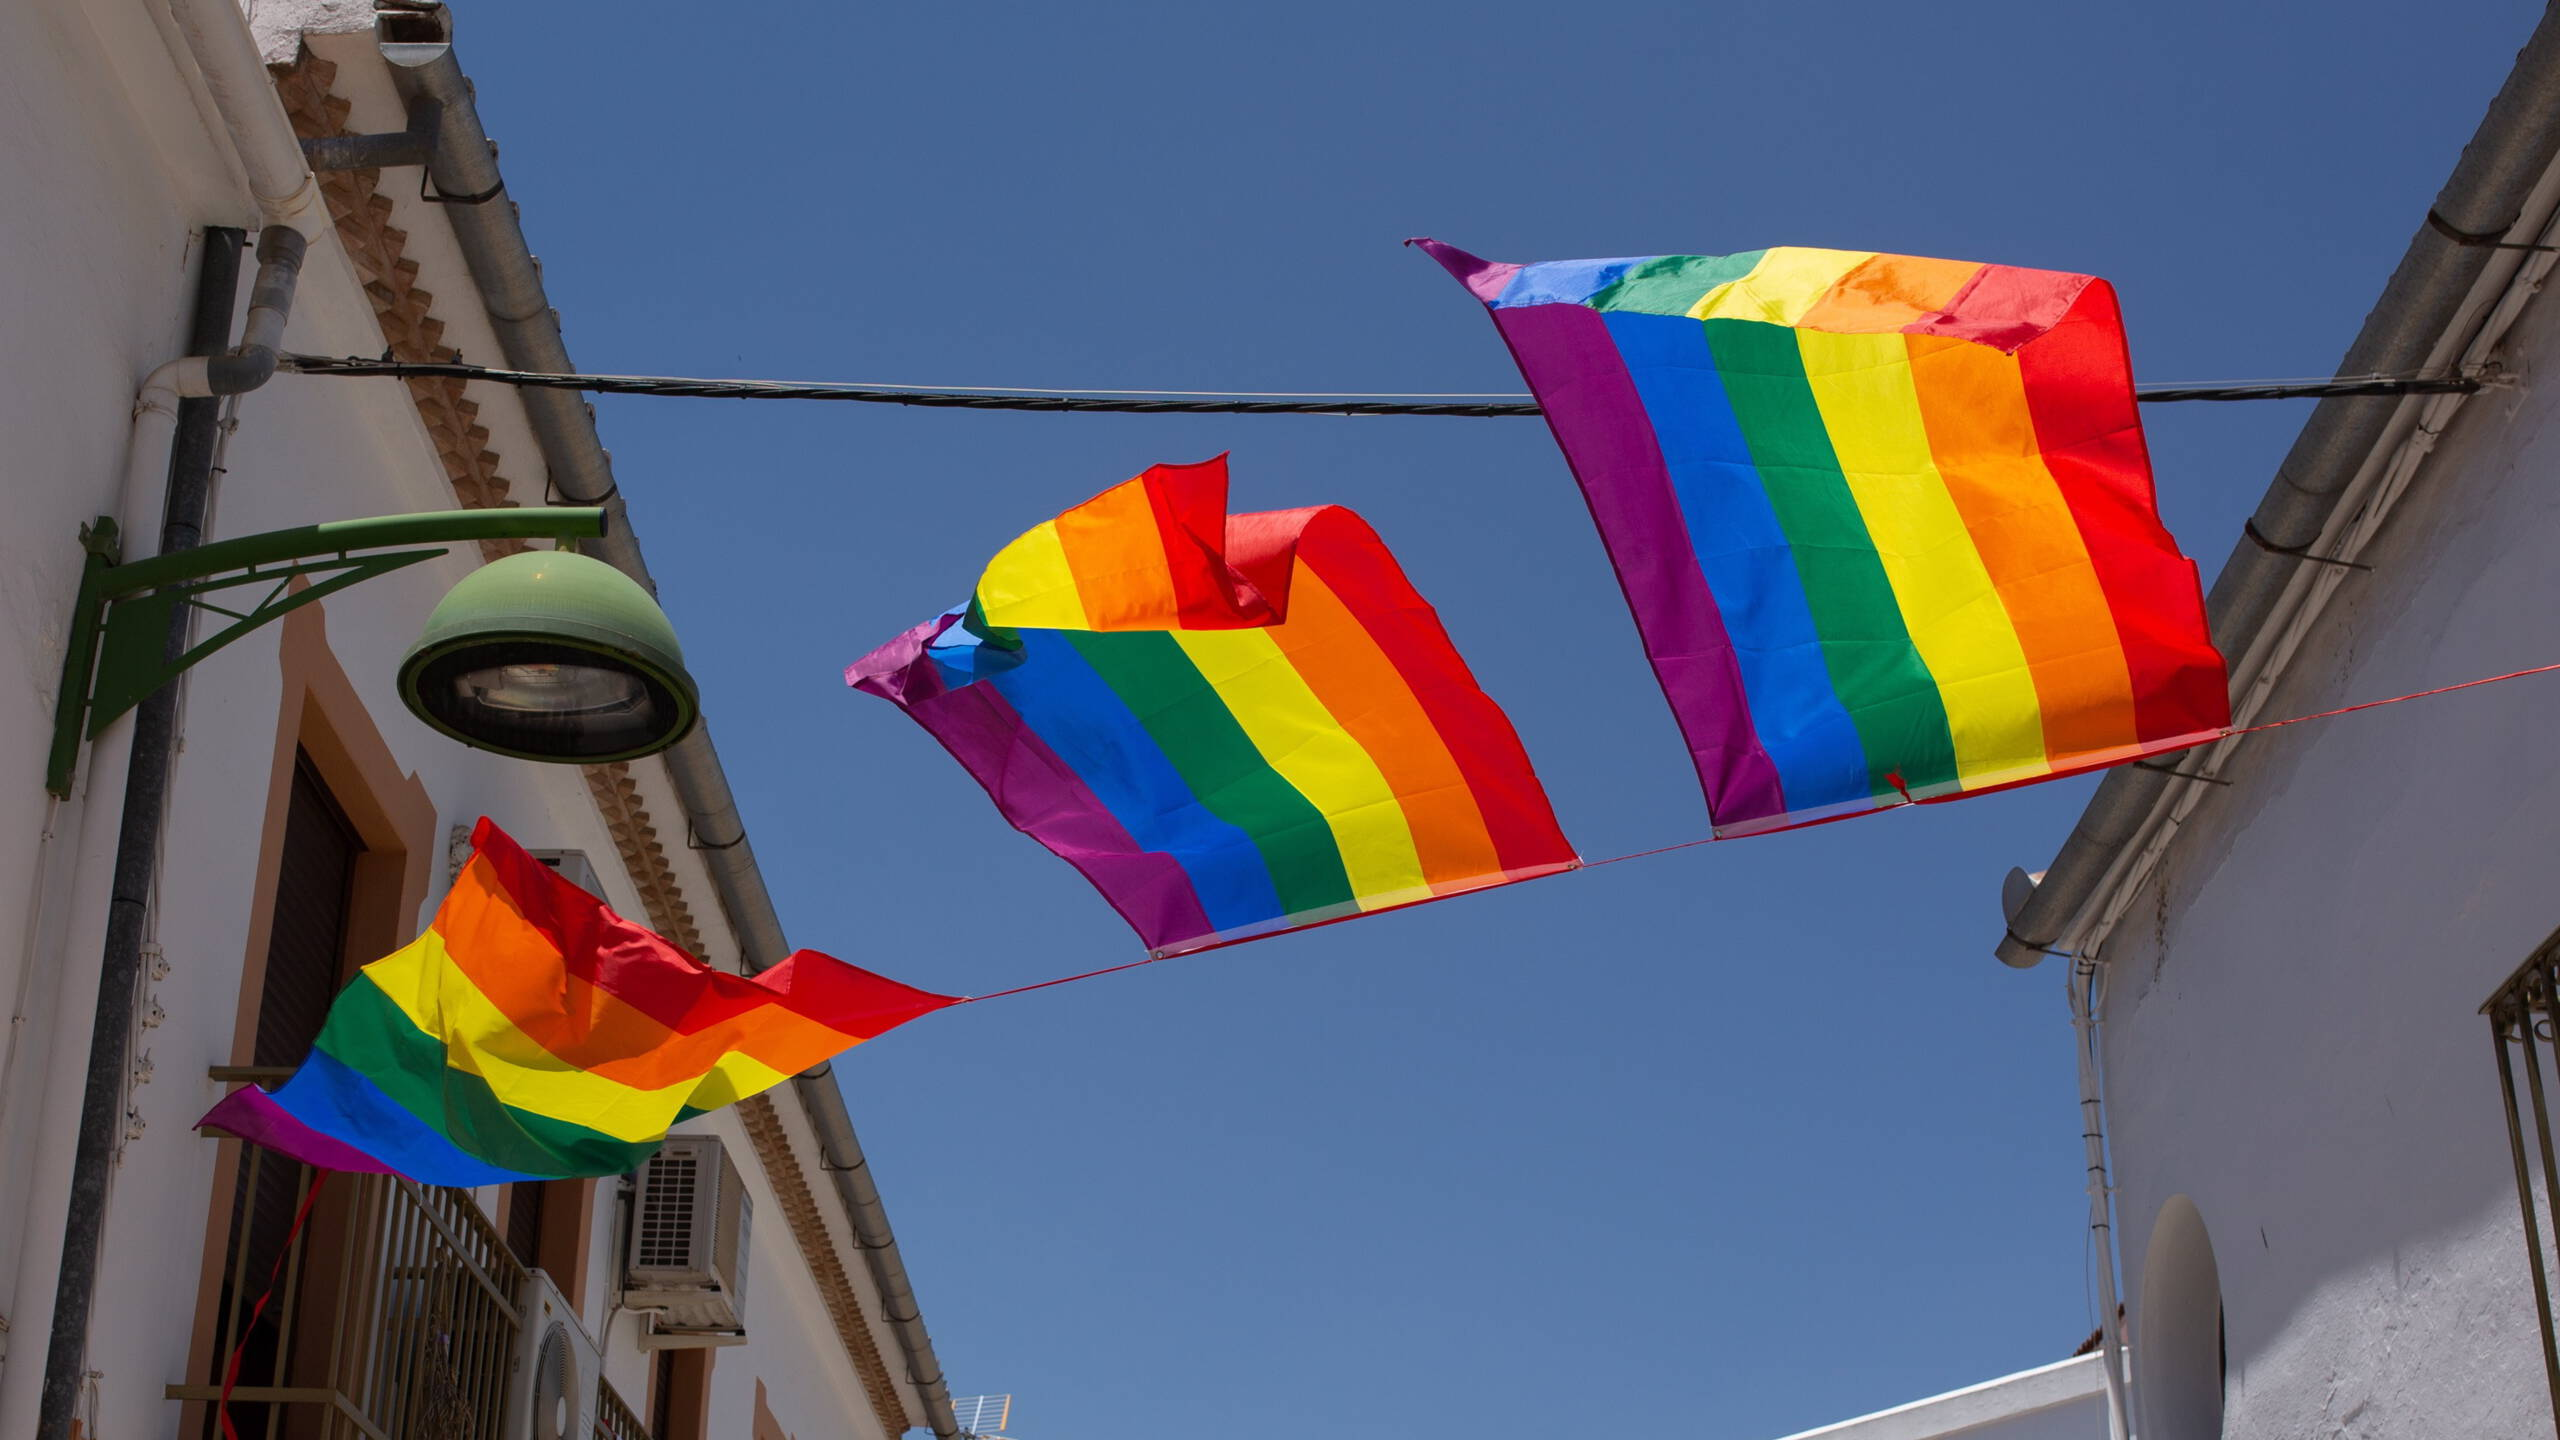 More rainbow flags in Villanueva de Algaidas